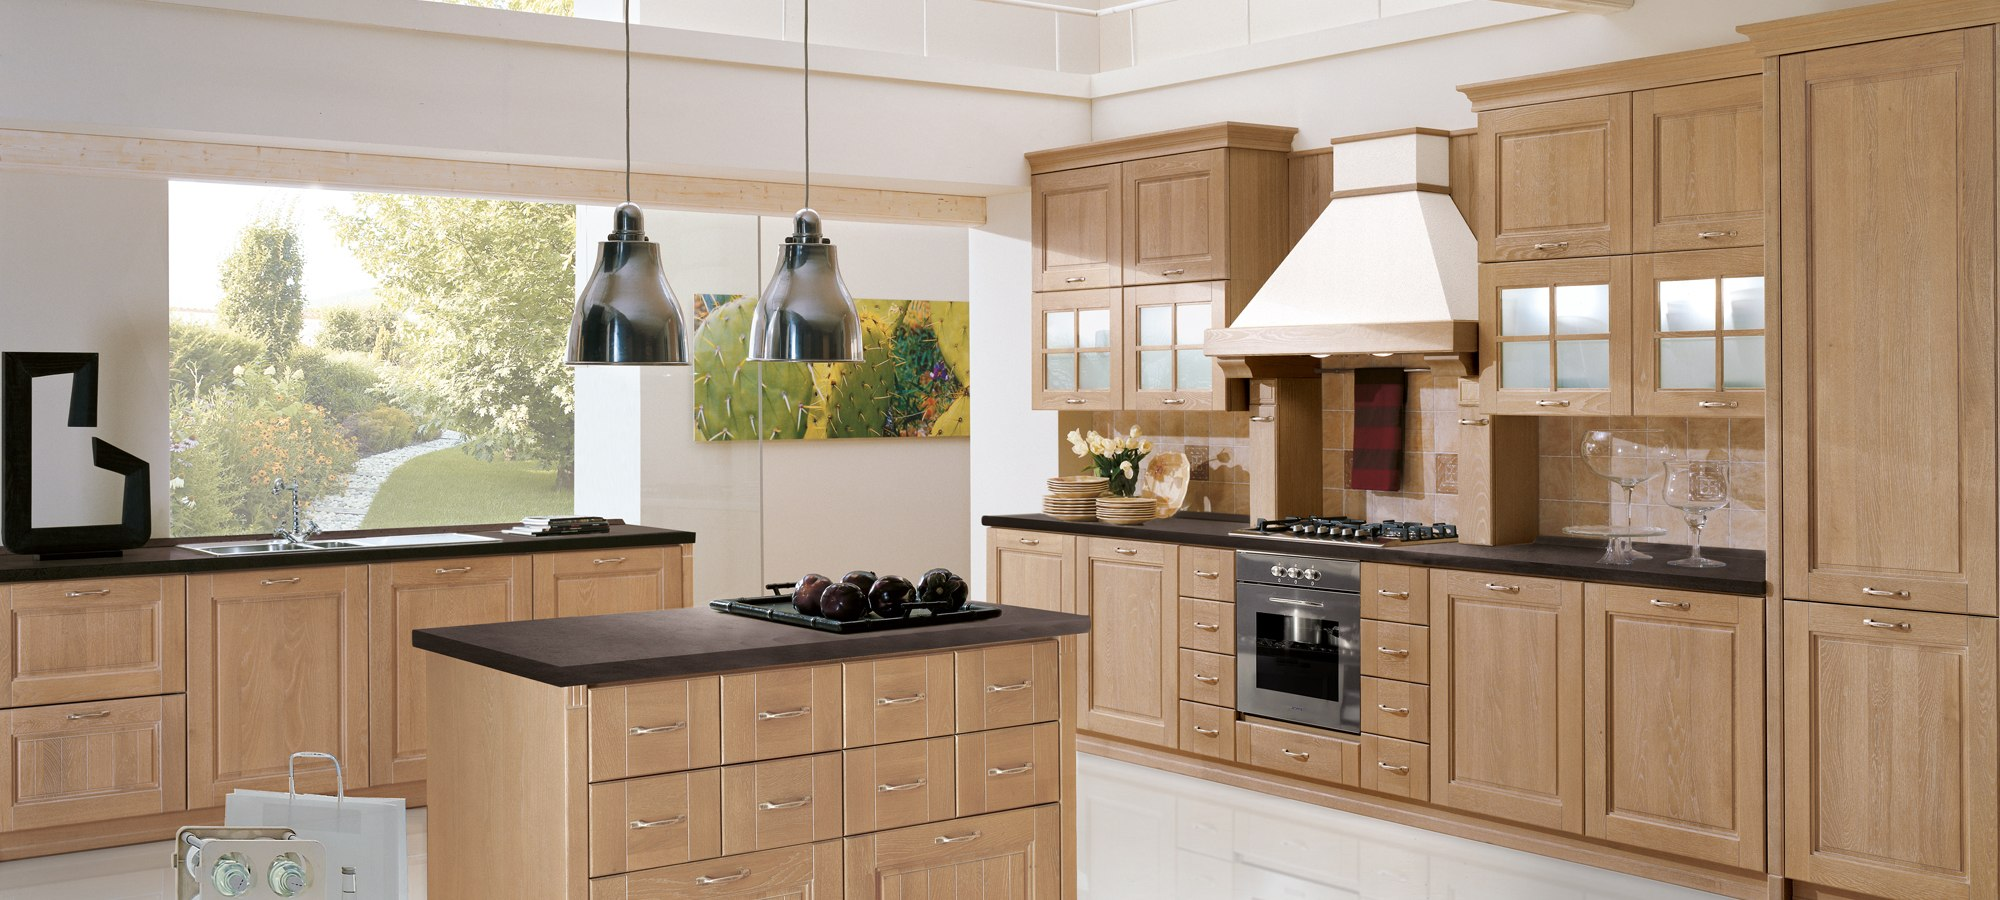 Stosa Cucine Contemporary Kitchen Cabinetry - Ontario Collection ...